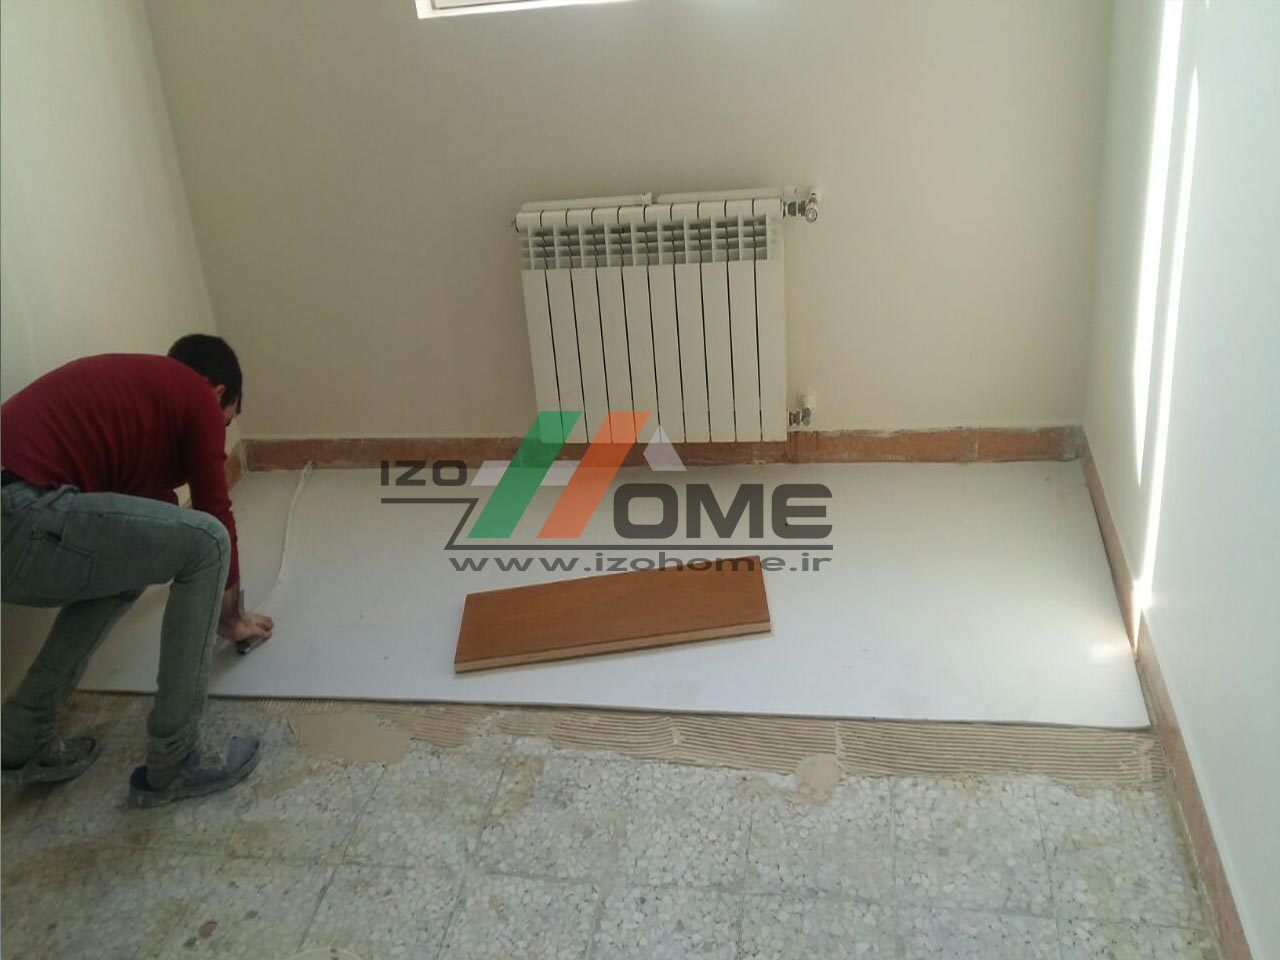 izohome99 - Sound insulation for the floor